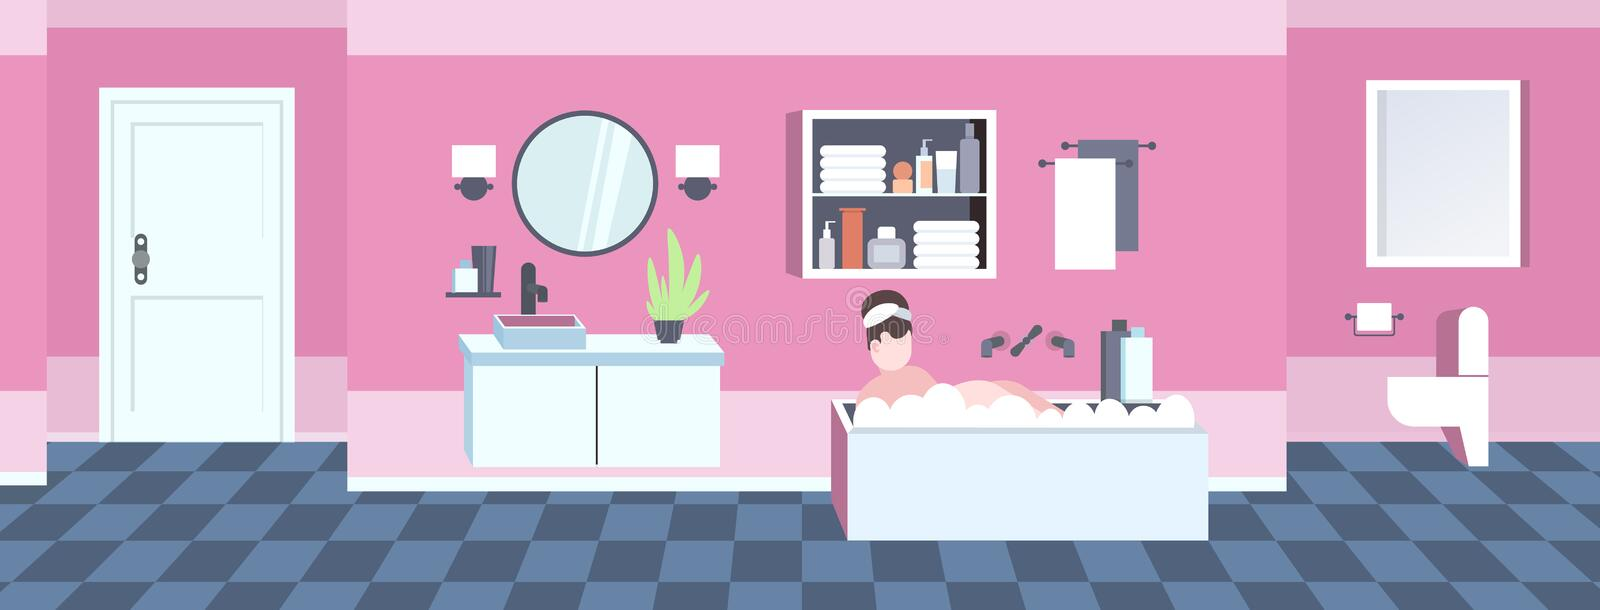 Fat obese woman washing relaxing in bath with foam overweight girl lying in bathtub obesity concept modern bathroom. Interior flat horizontal full length vector stock illustration